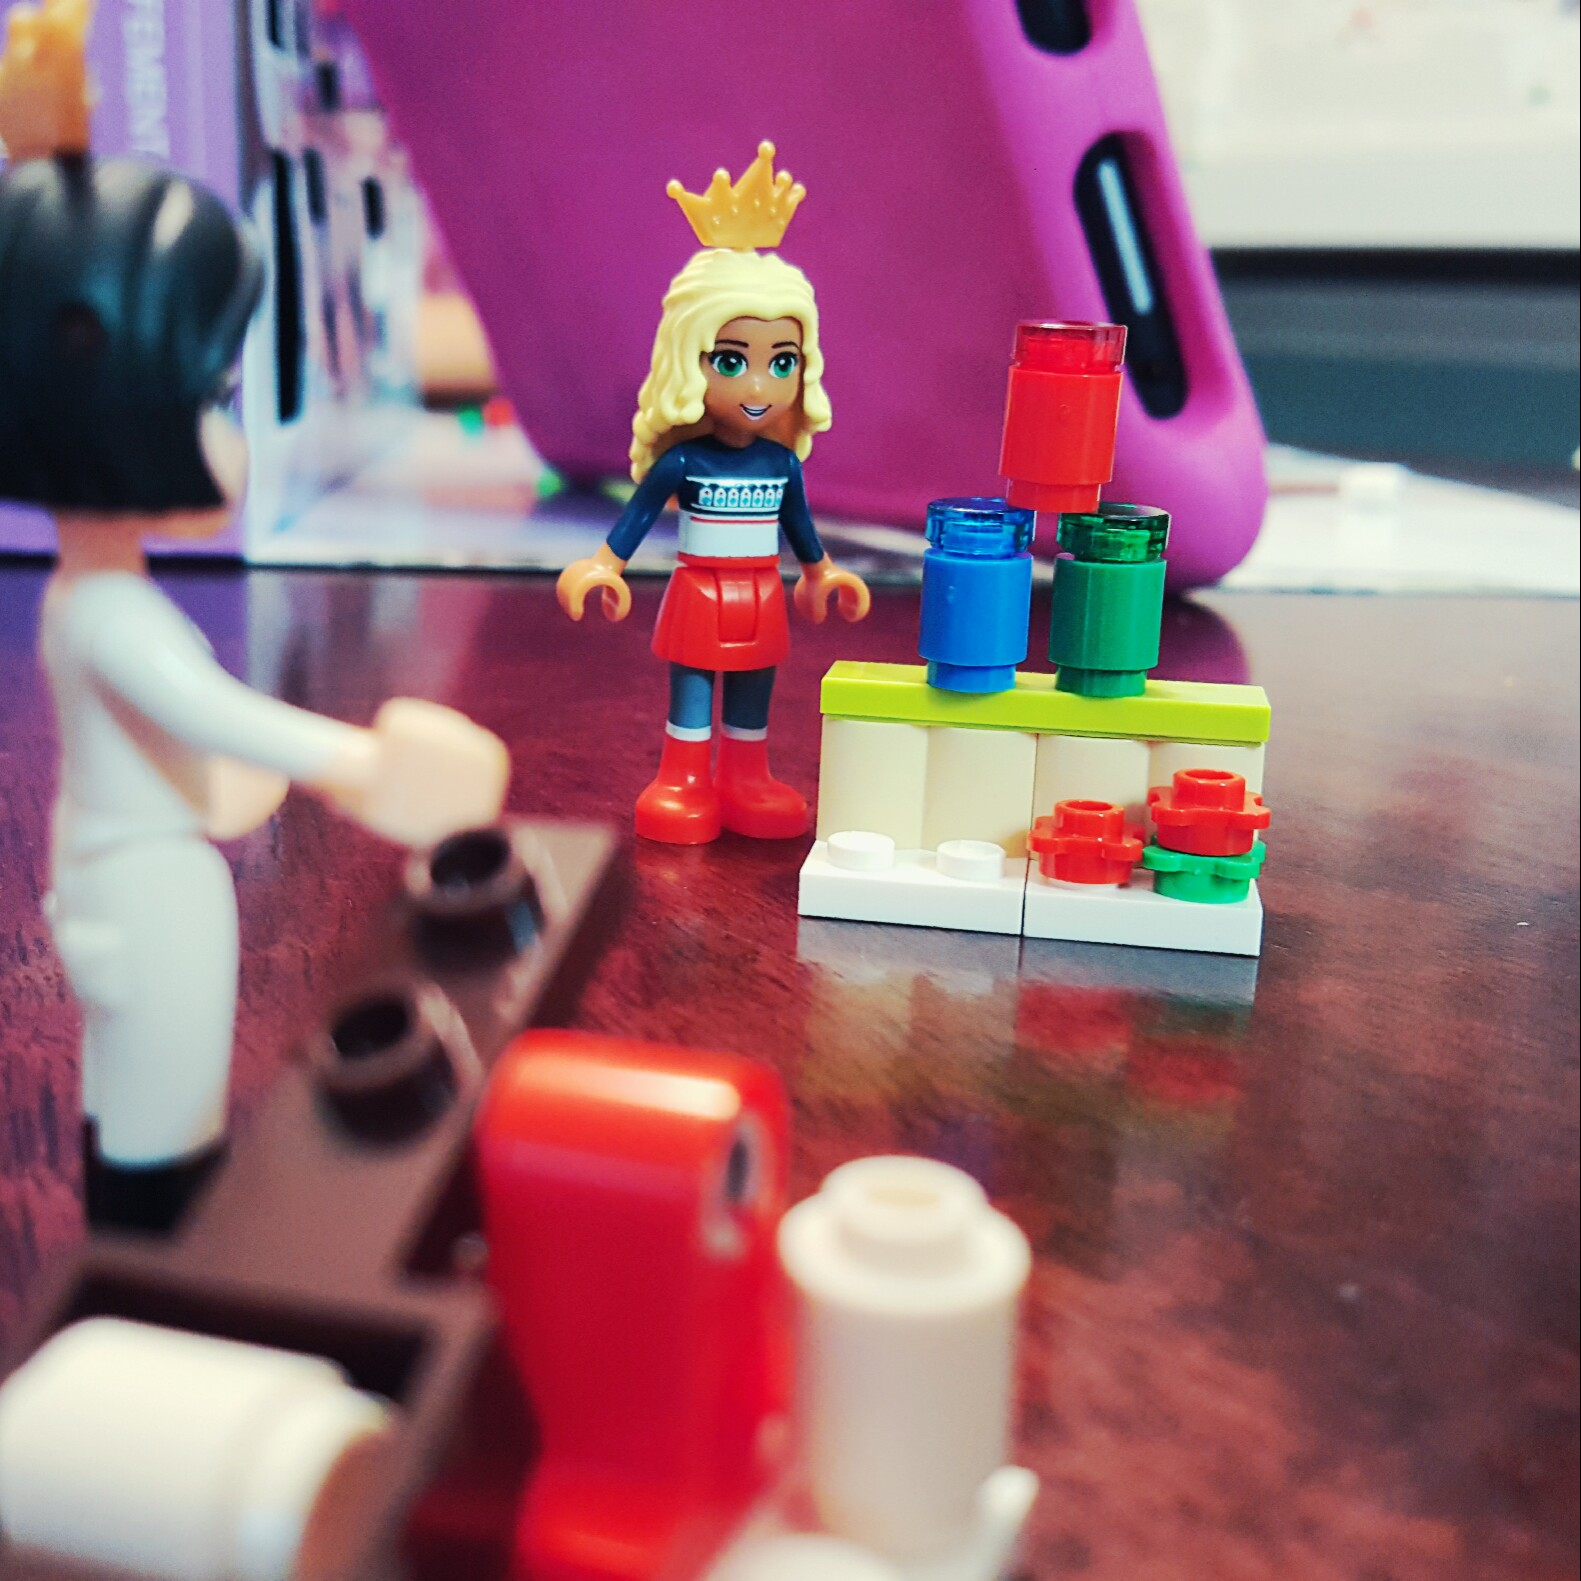 """""""You get 2 tries!"""" - Day 22 Carnival Can Game Stand from LEGO Friends Advent Calendar"""